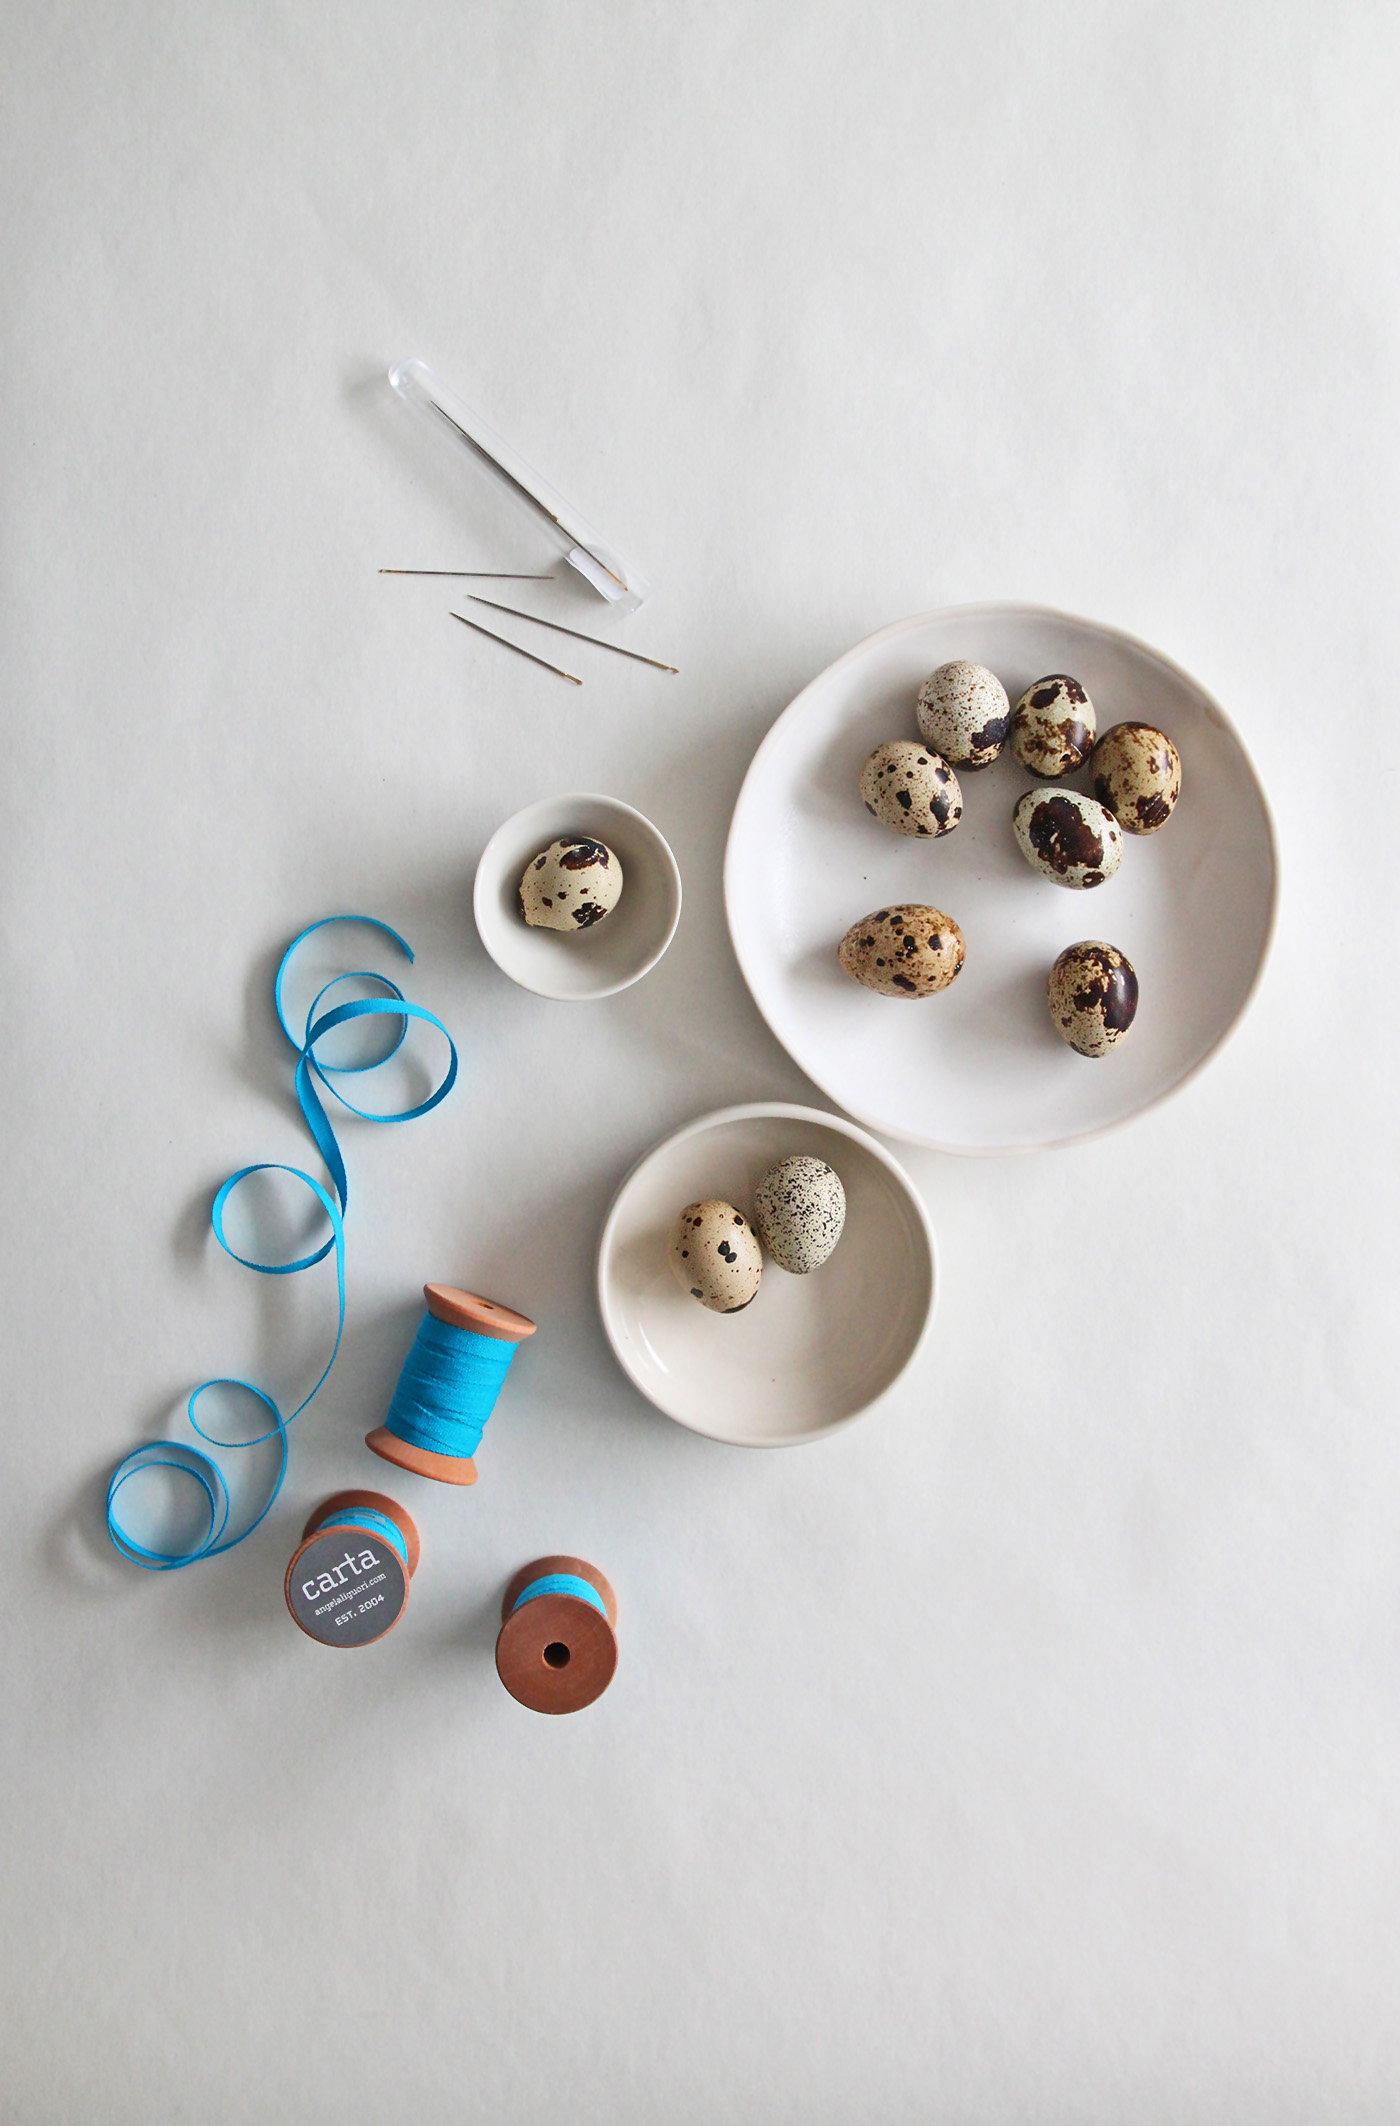 DIY Peacock and Quail Easter Egg Ornaments, supplies, by Justine Hand and Angela Liguori